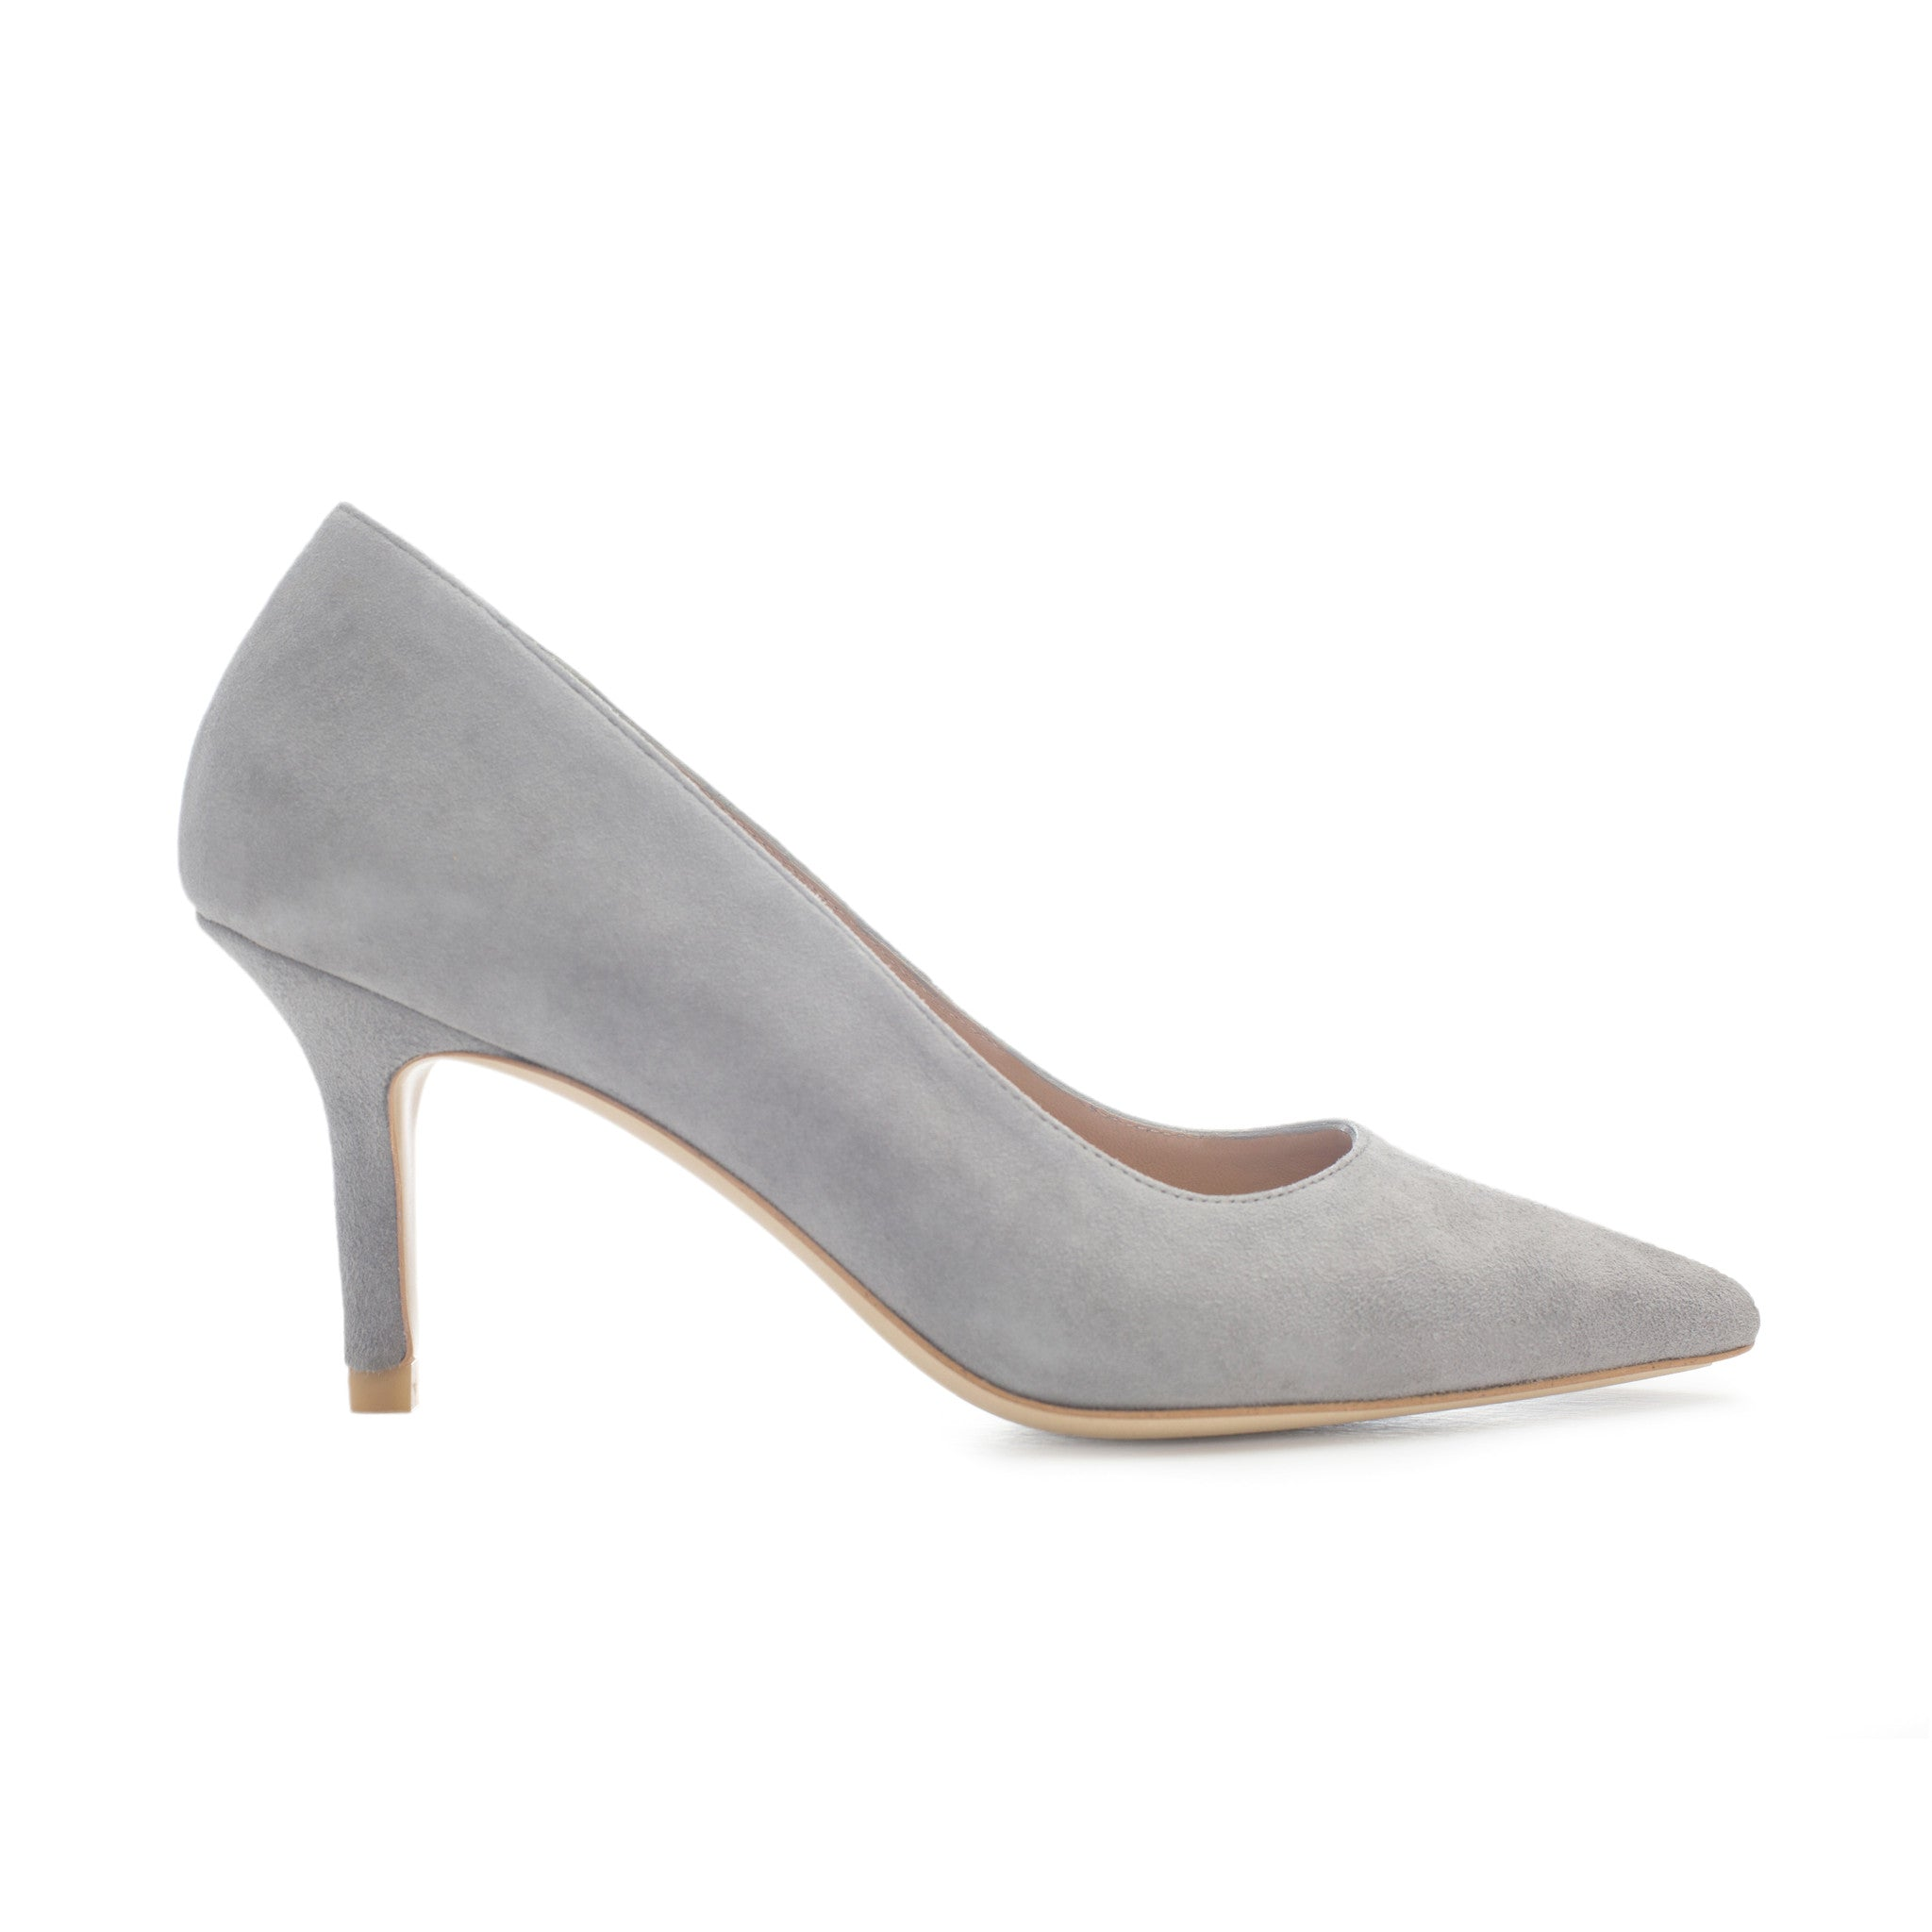 'GREY 75' Suede Leather Pumps